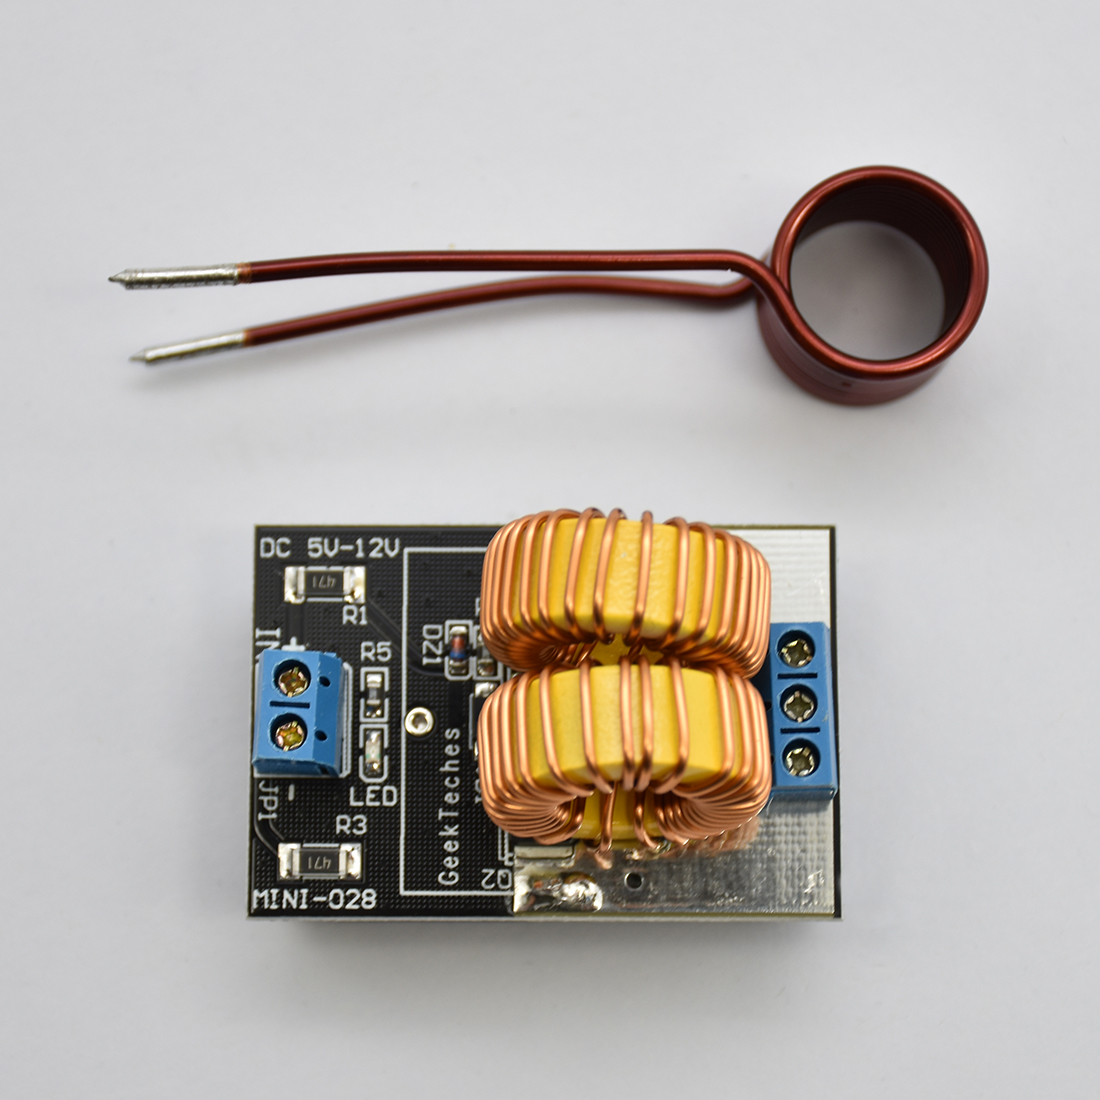 1pcs 5V~12V Zero Voltage Switching ZVS Induction Heating Power Supply Module With Coil Power Supply Heating Power Supply Module